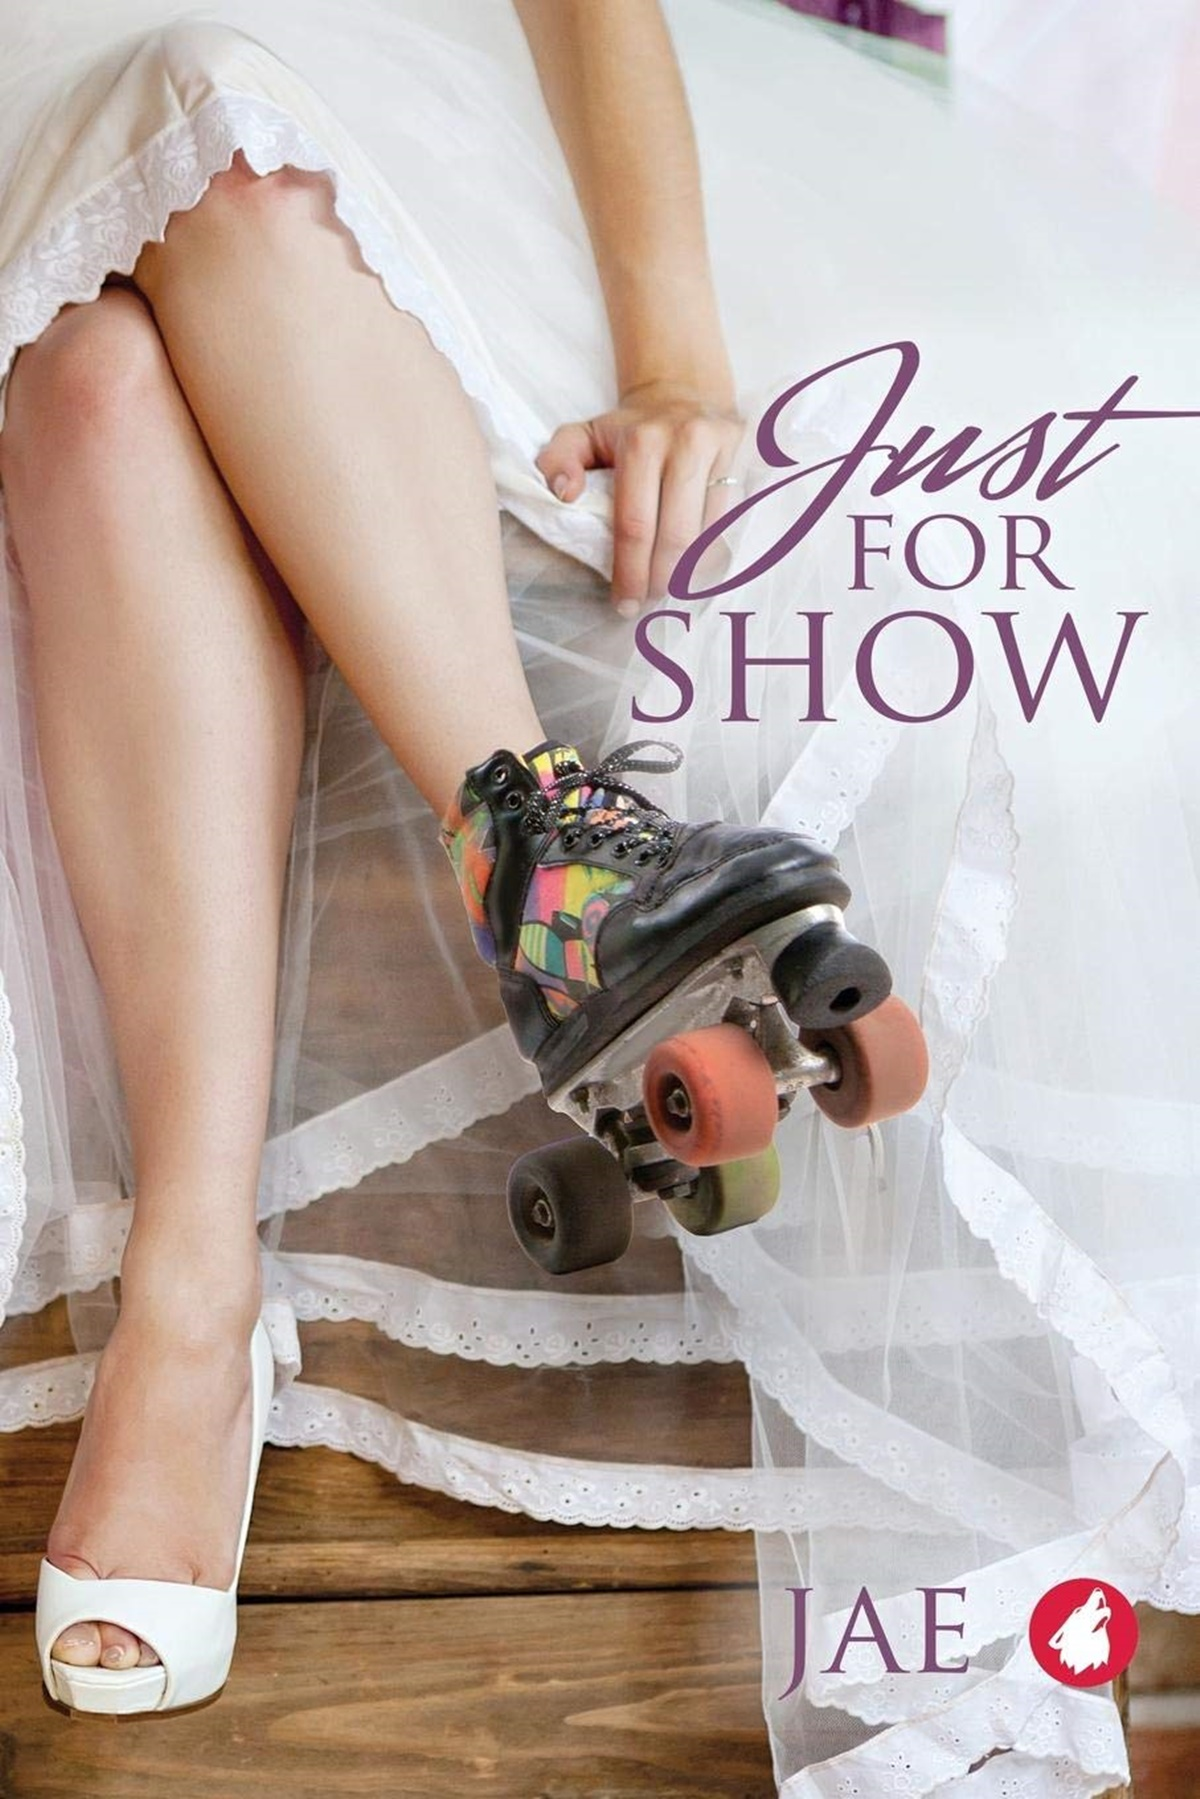 Fake Relationship Romance Novels, cover of Just For Show by Jae, books